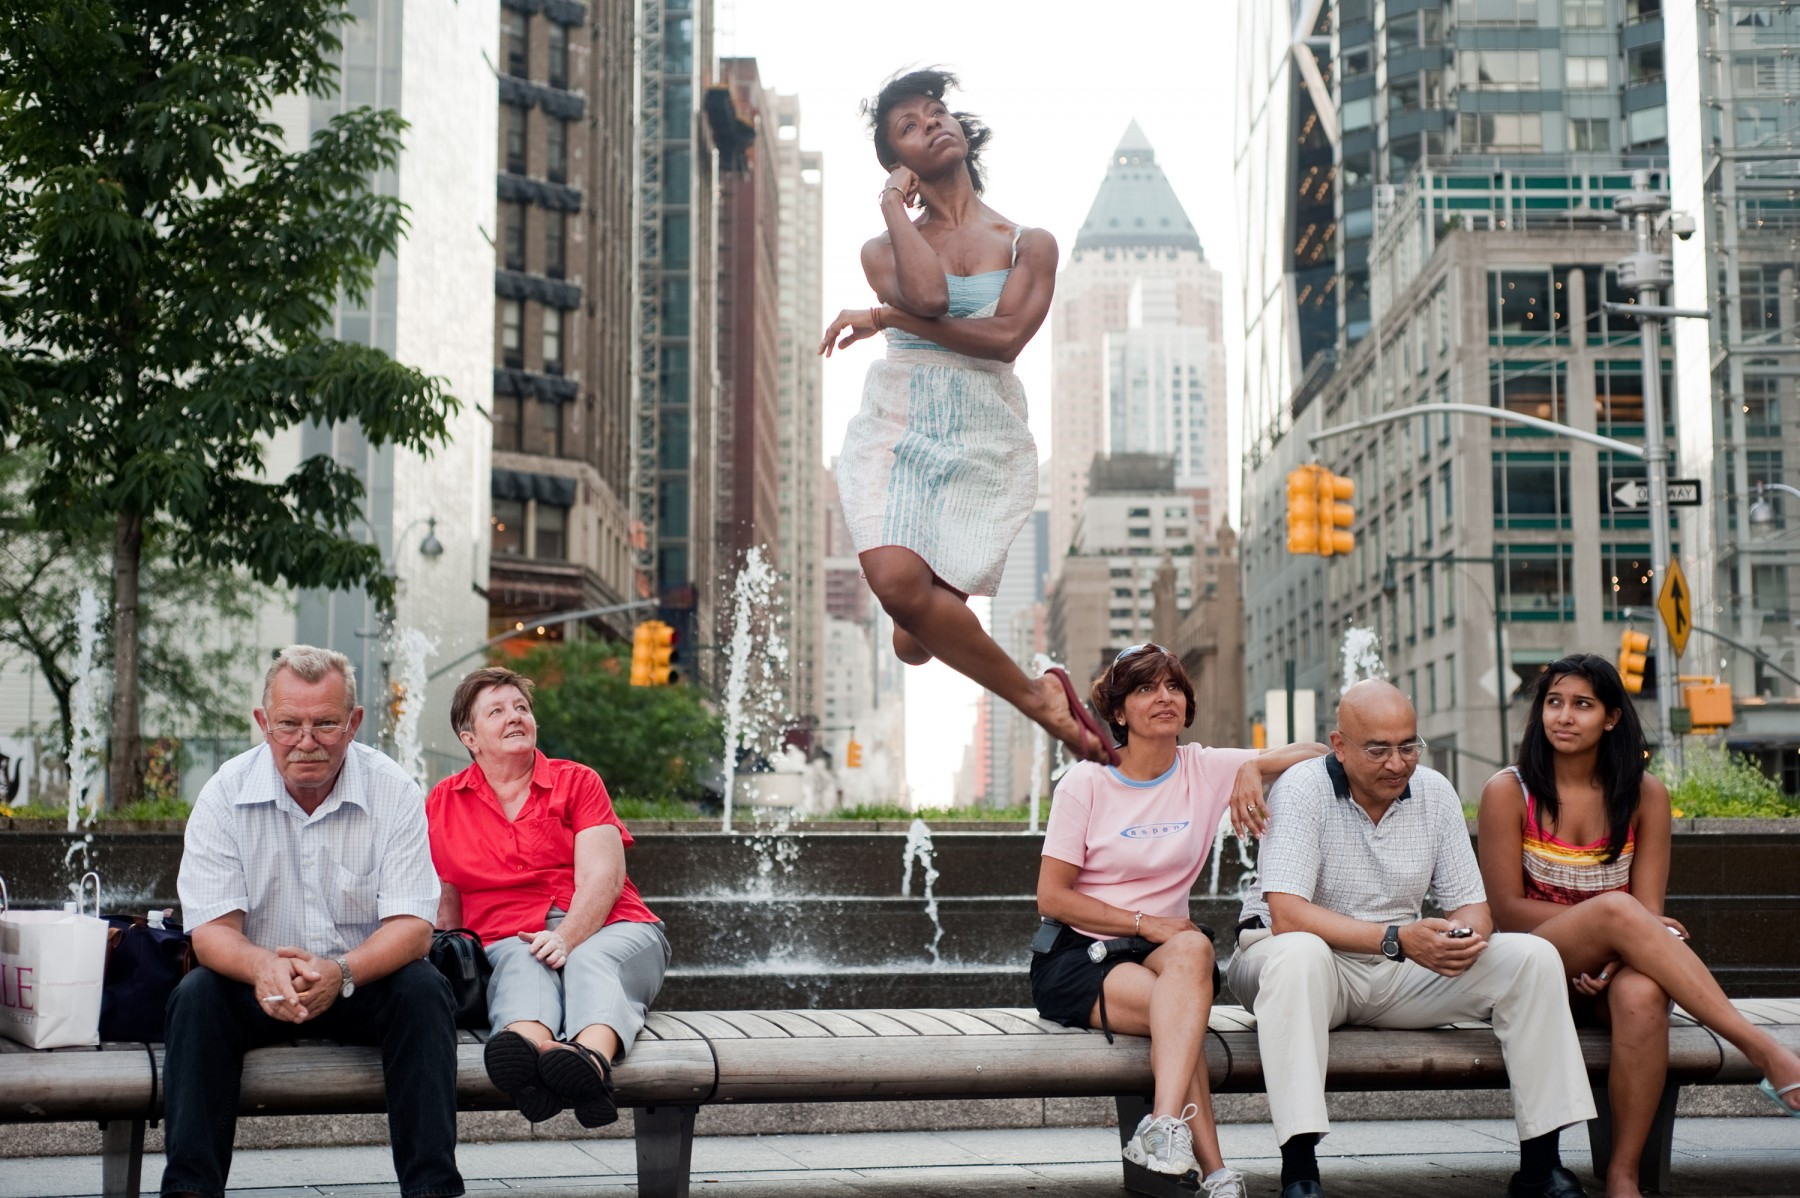 7-Dancers-Among-Us-in-Columbus-Circle-Michelle-Fleet